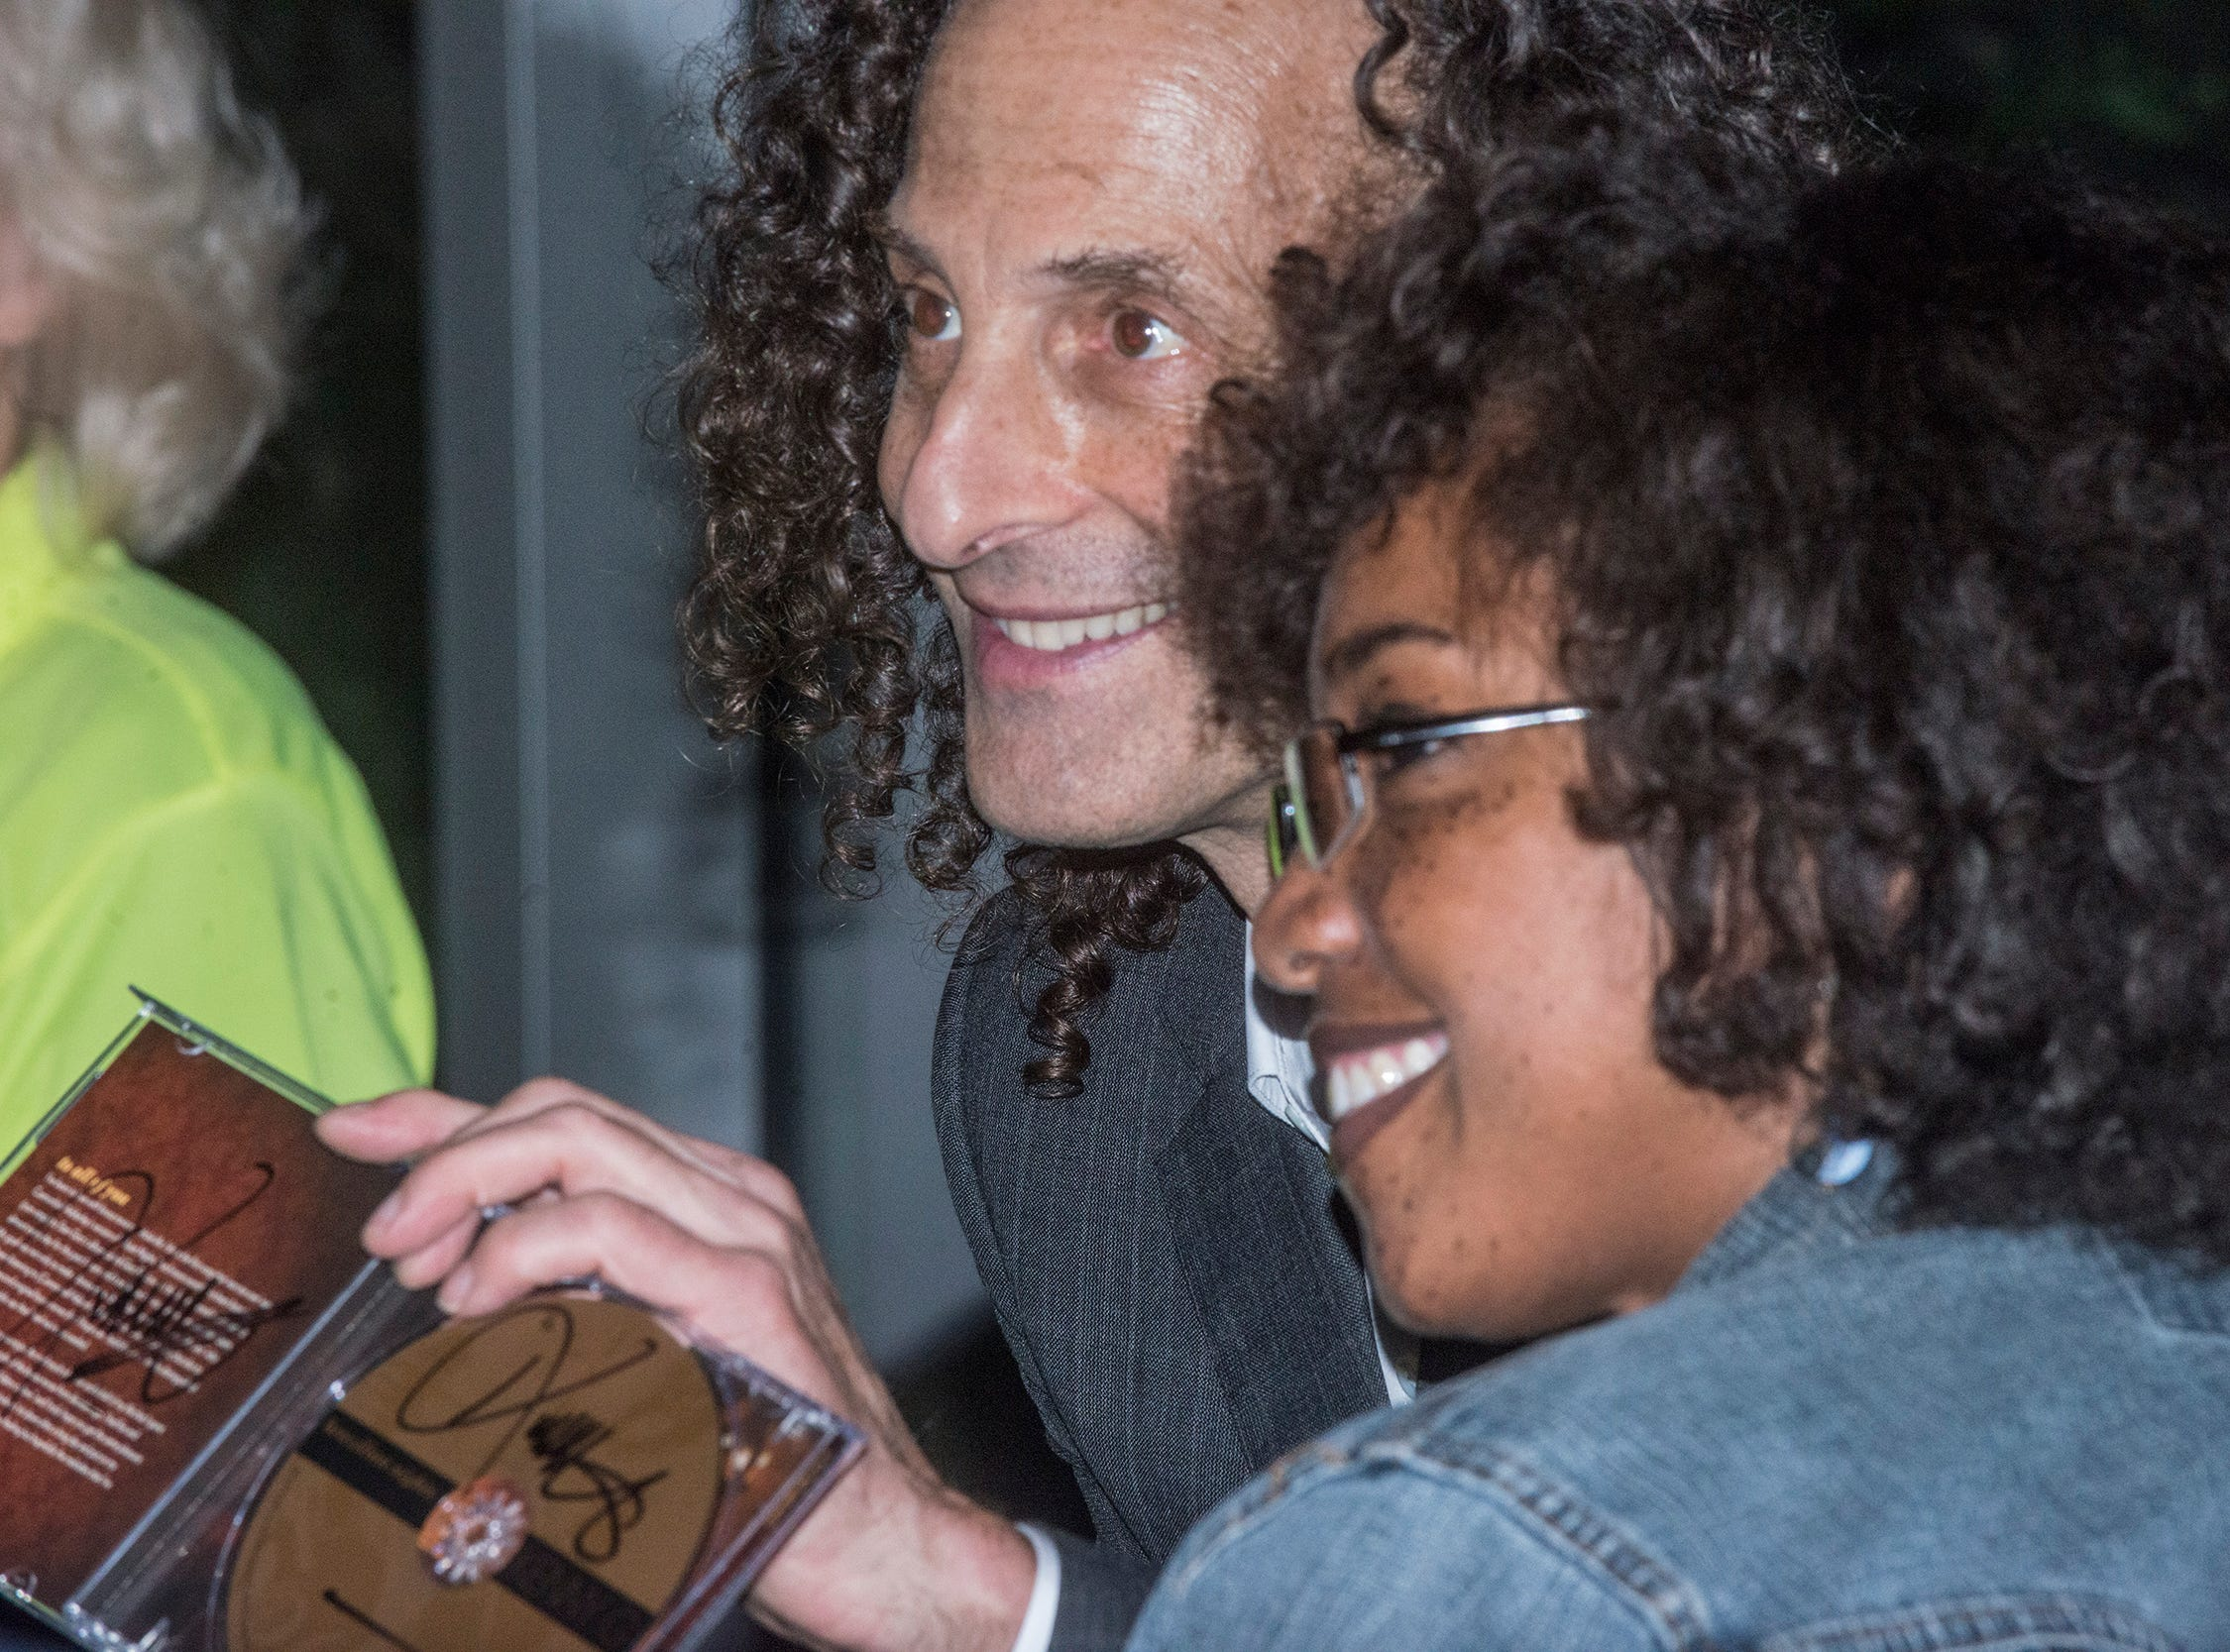 Kenny G autographs his CDs for fans on Thursday, Oct. 25, 2018, at the Montgomery Performing Arts Centre.